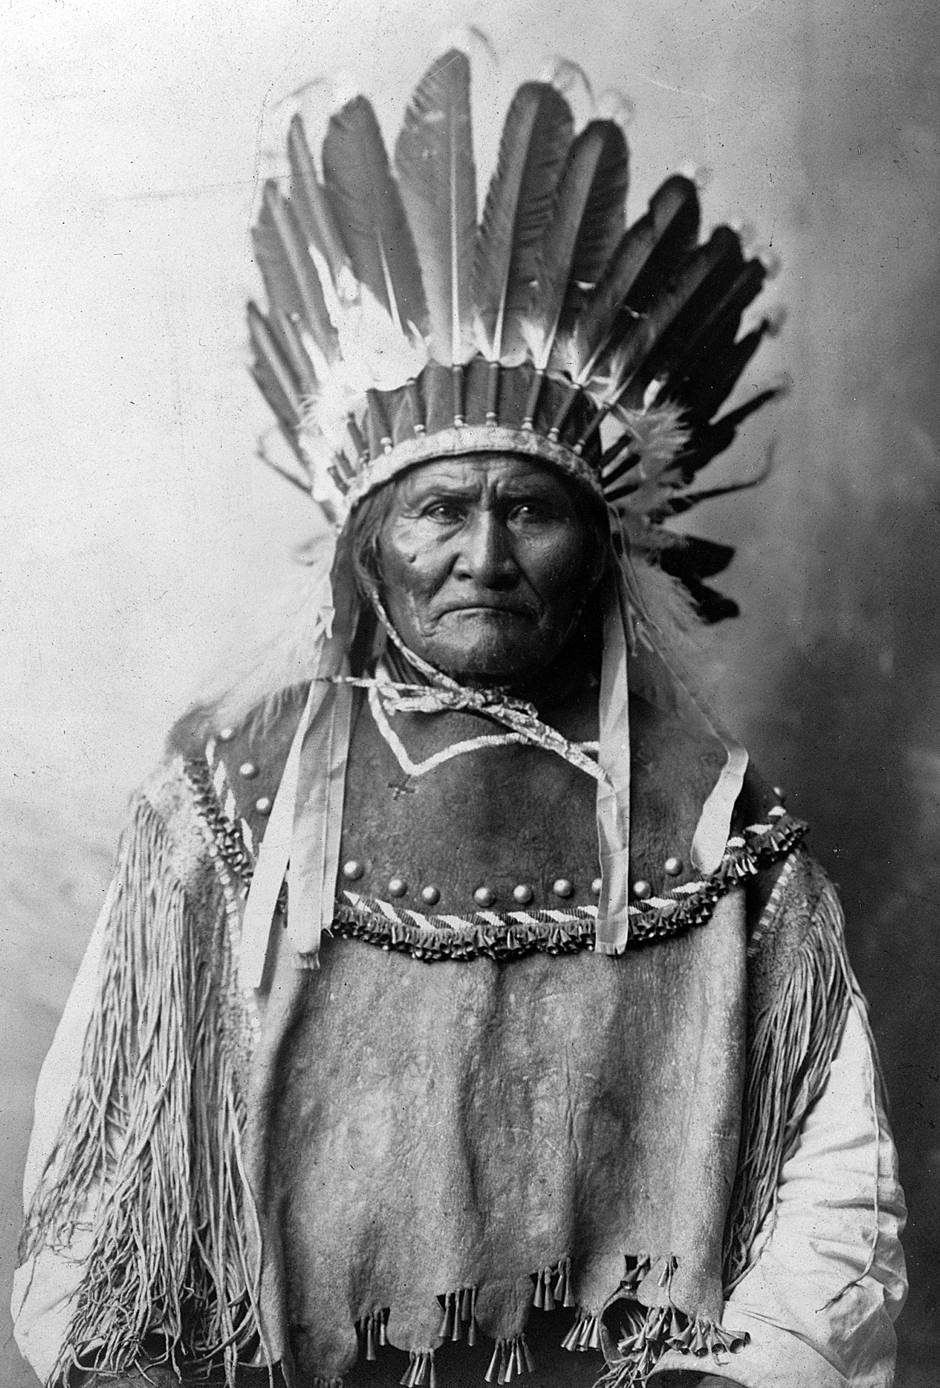 Archival images show Geronimo after his surrender in 1886 - The Globe and Mail